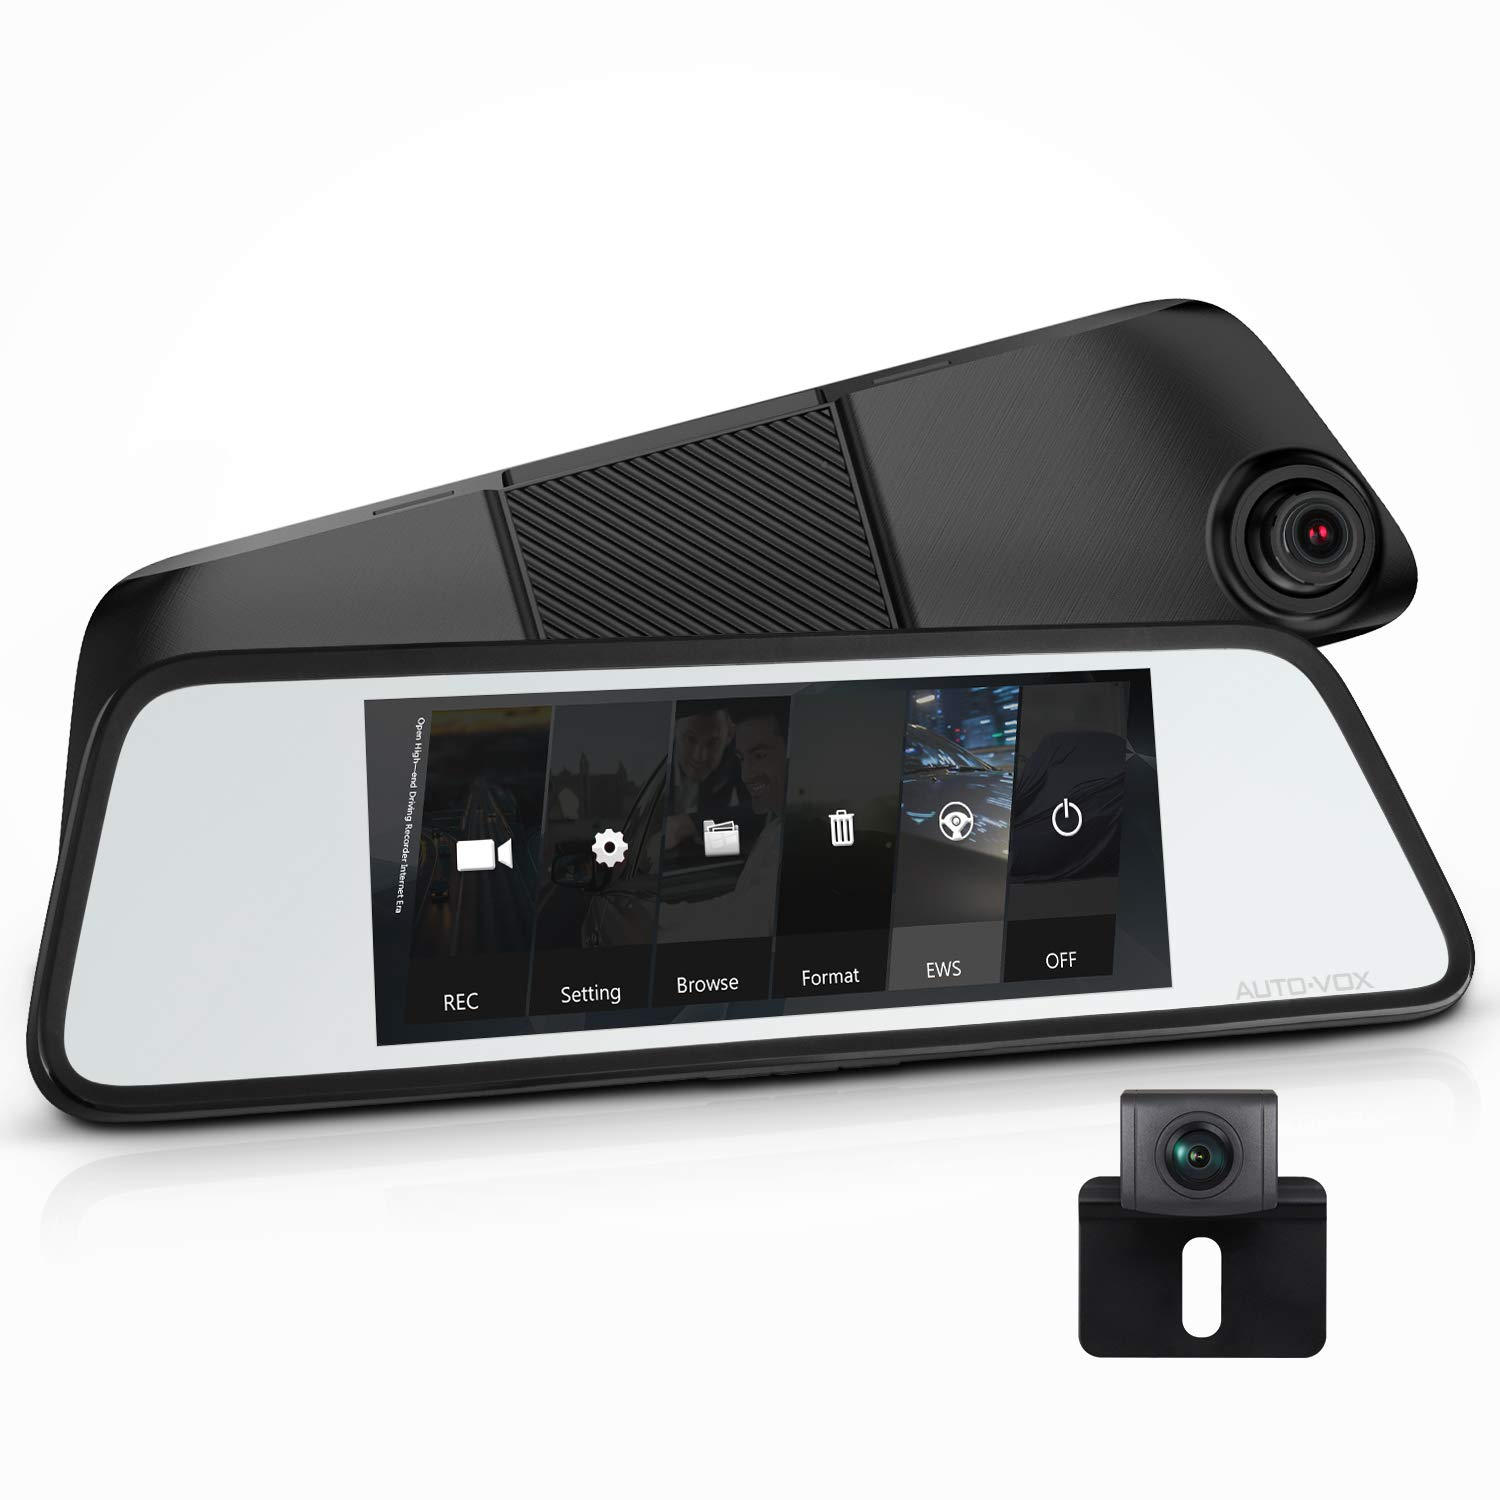 Auto Vox M8 Touch Screen Mirror Dash Cam1296p Fhd Front Free Volvo Wiring Diagrams Rear View Camera And 180horizontal Angle Backup Kit With Lane